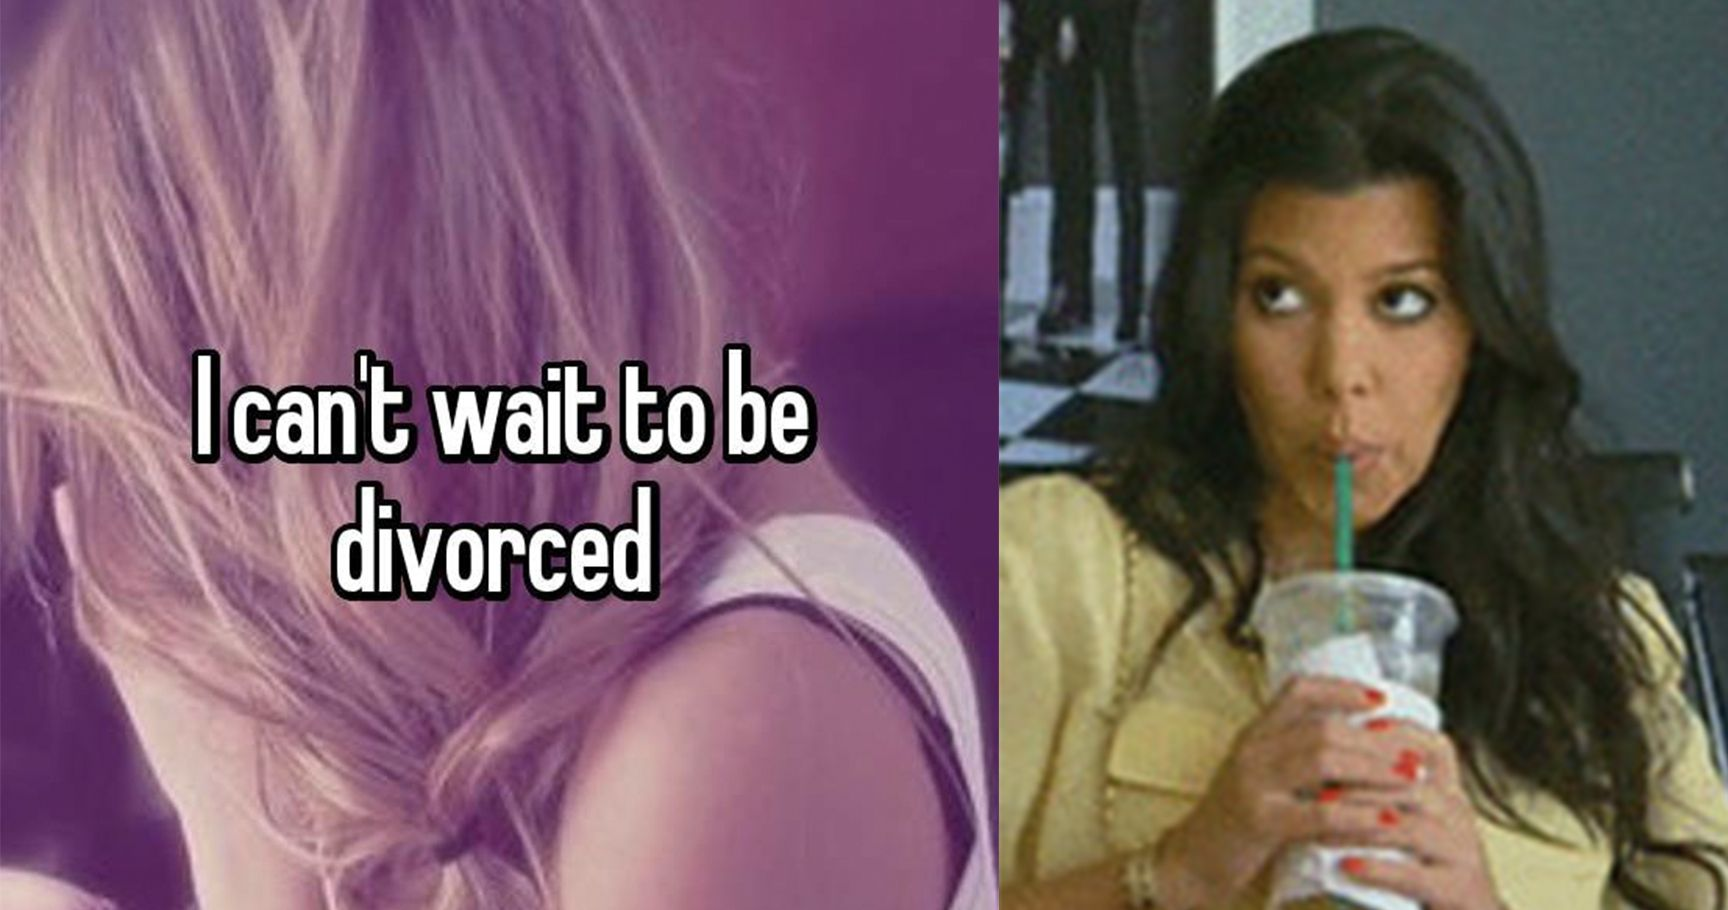 15 Jaw-Dropping Whisper Confessions From People Who Have Gotten Divorced